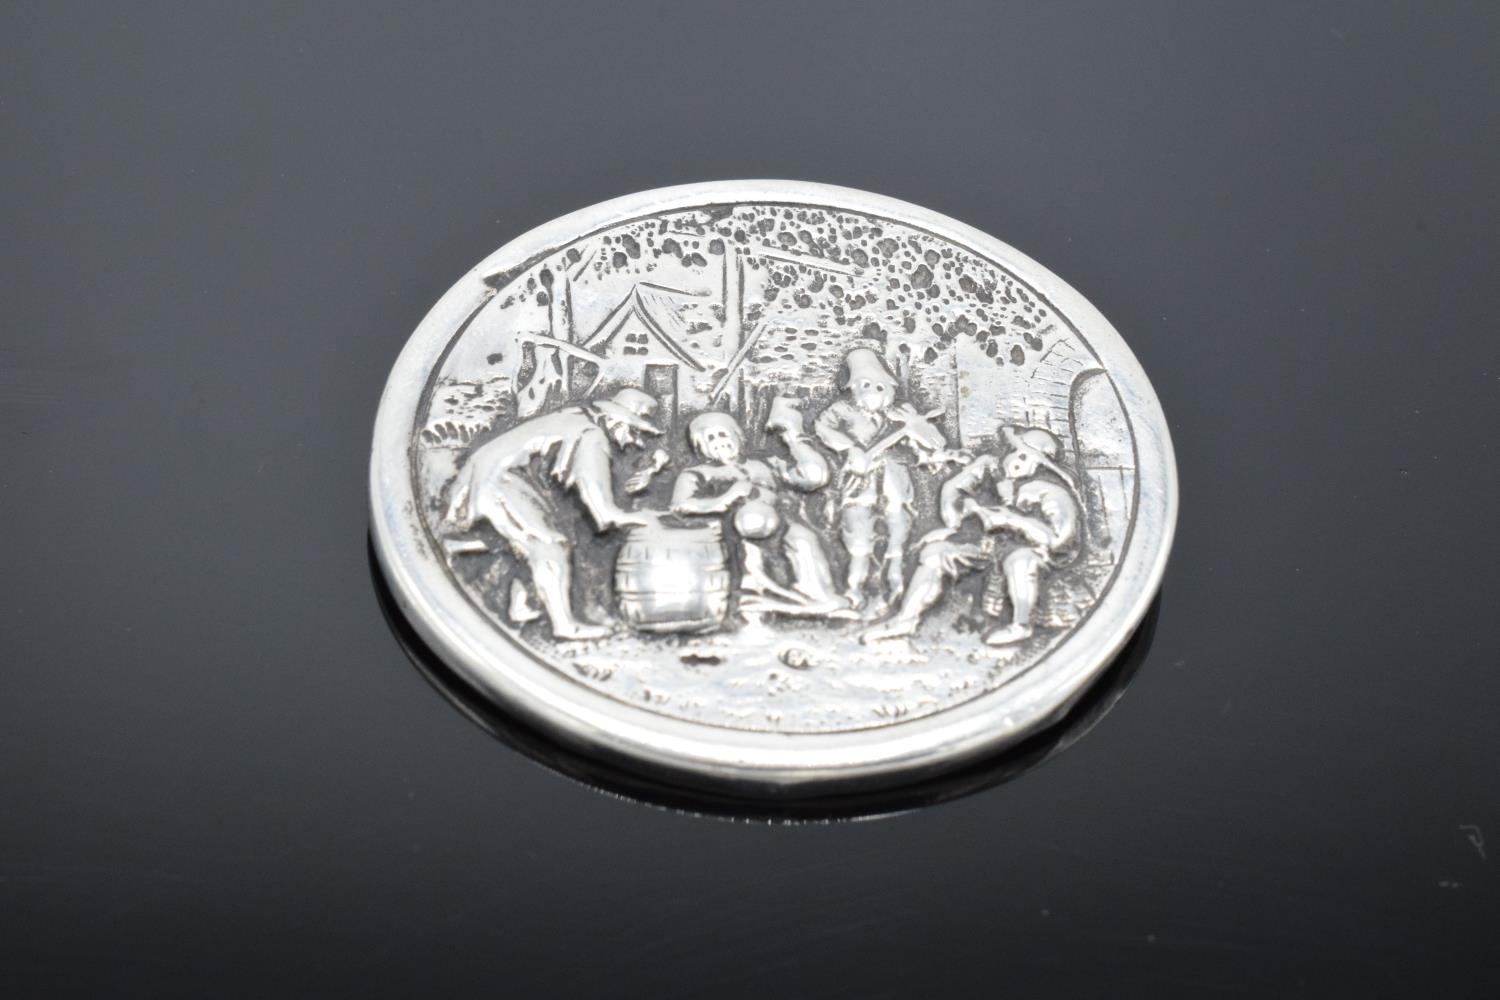 A late 19th/ early 20th century circular silver brooch depicting dutch style scenes with a base - Image 4 of 4